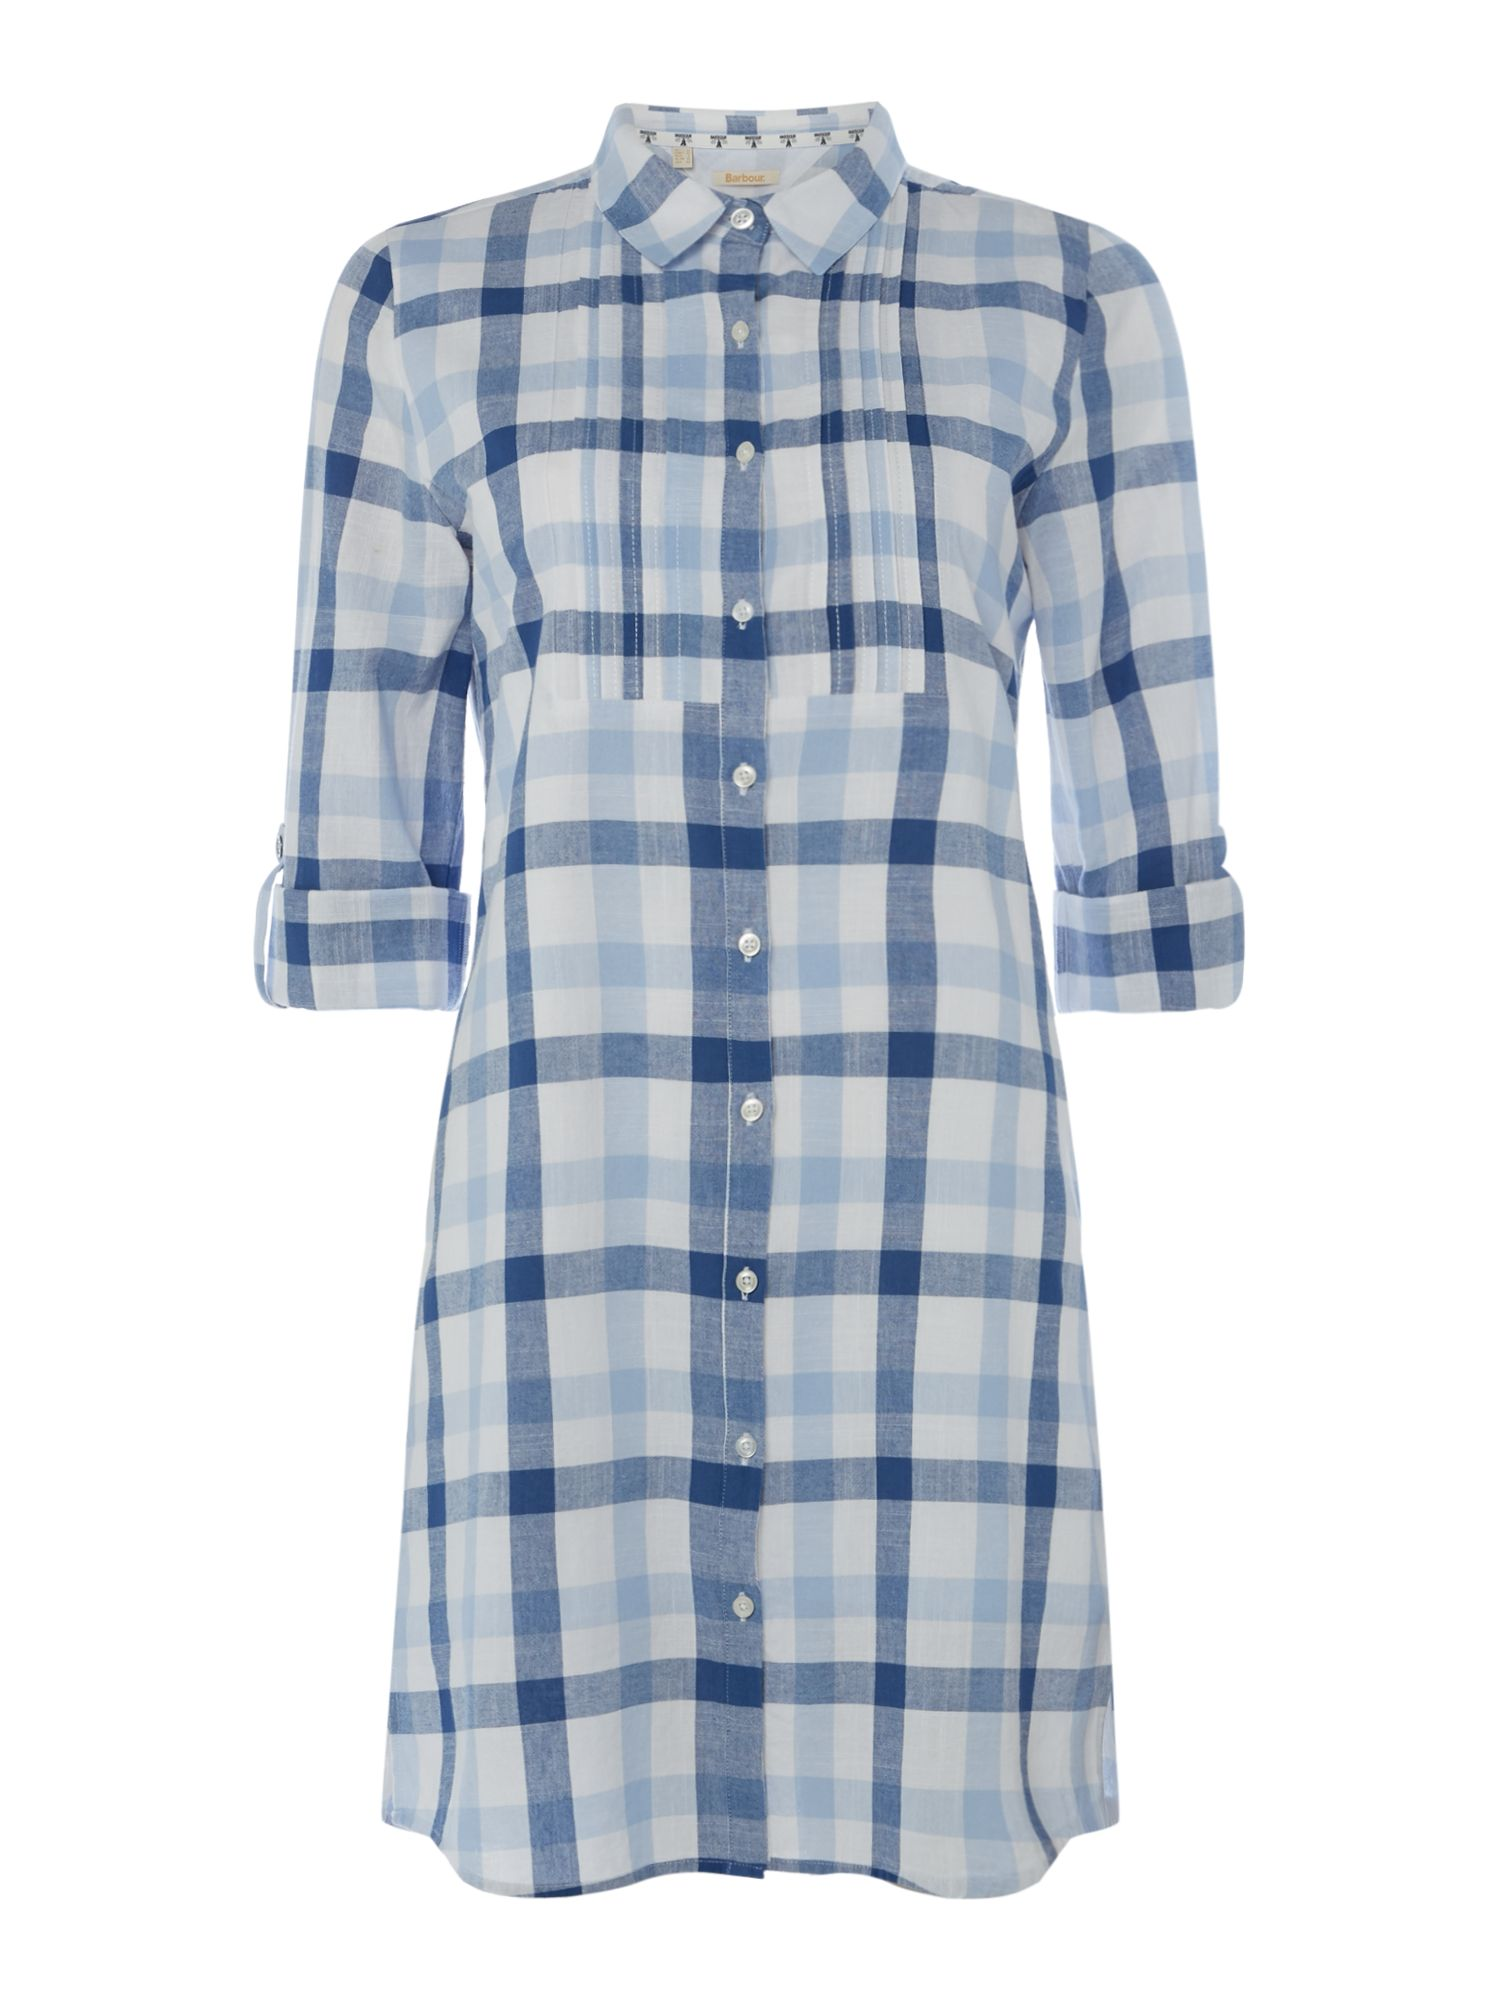 Barbour 34 Sleeve Checked Shirt Dress, Multi-Coloured